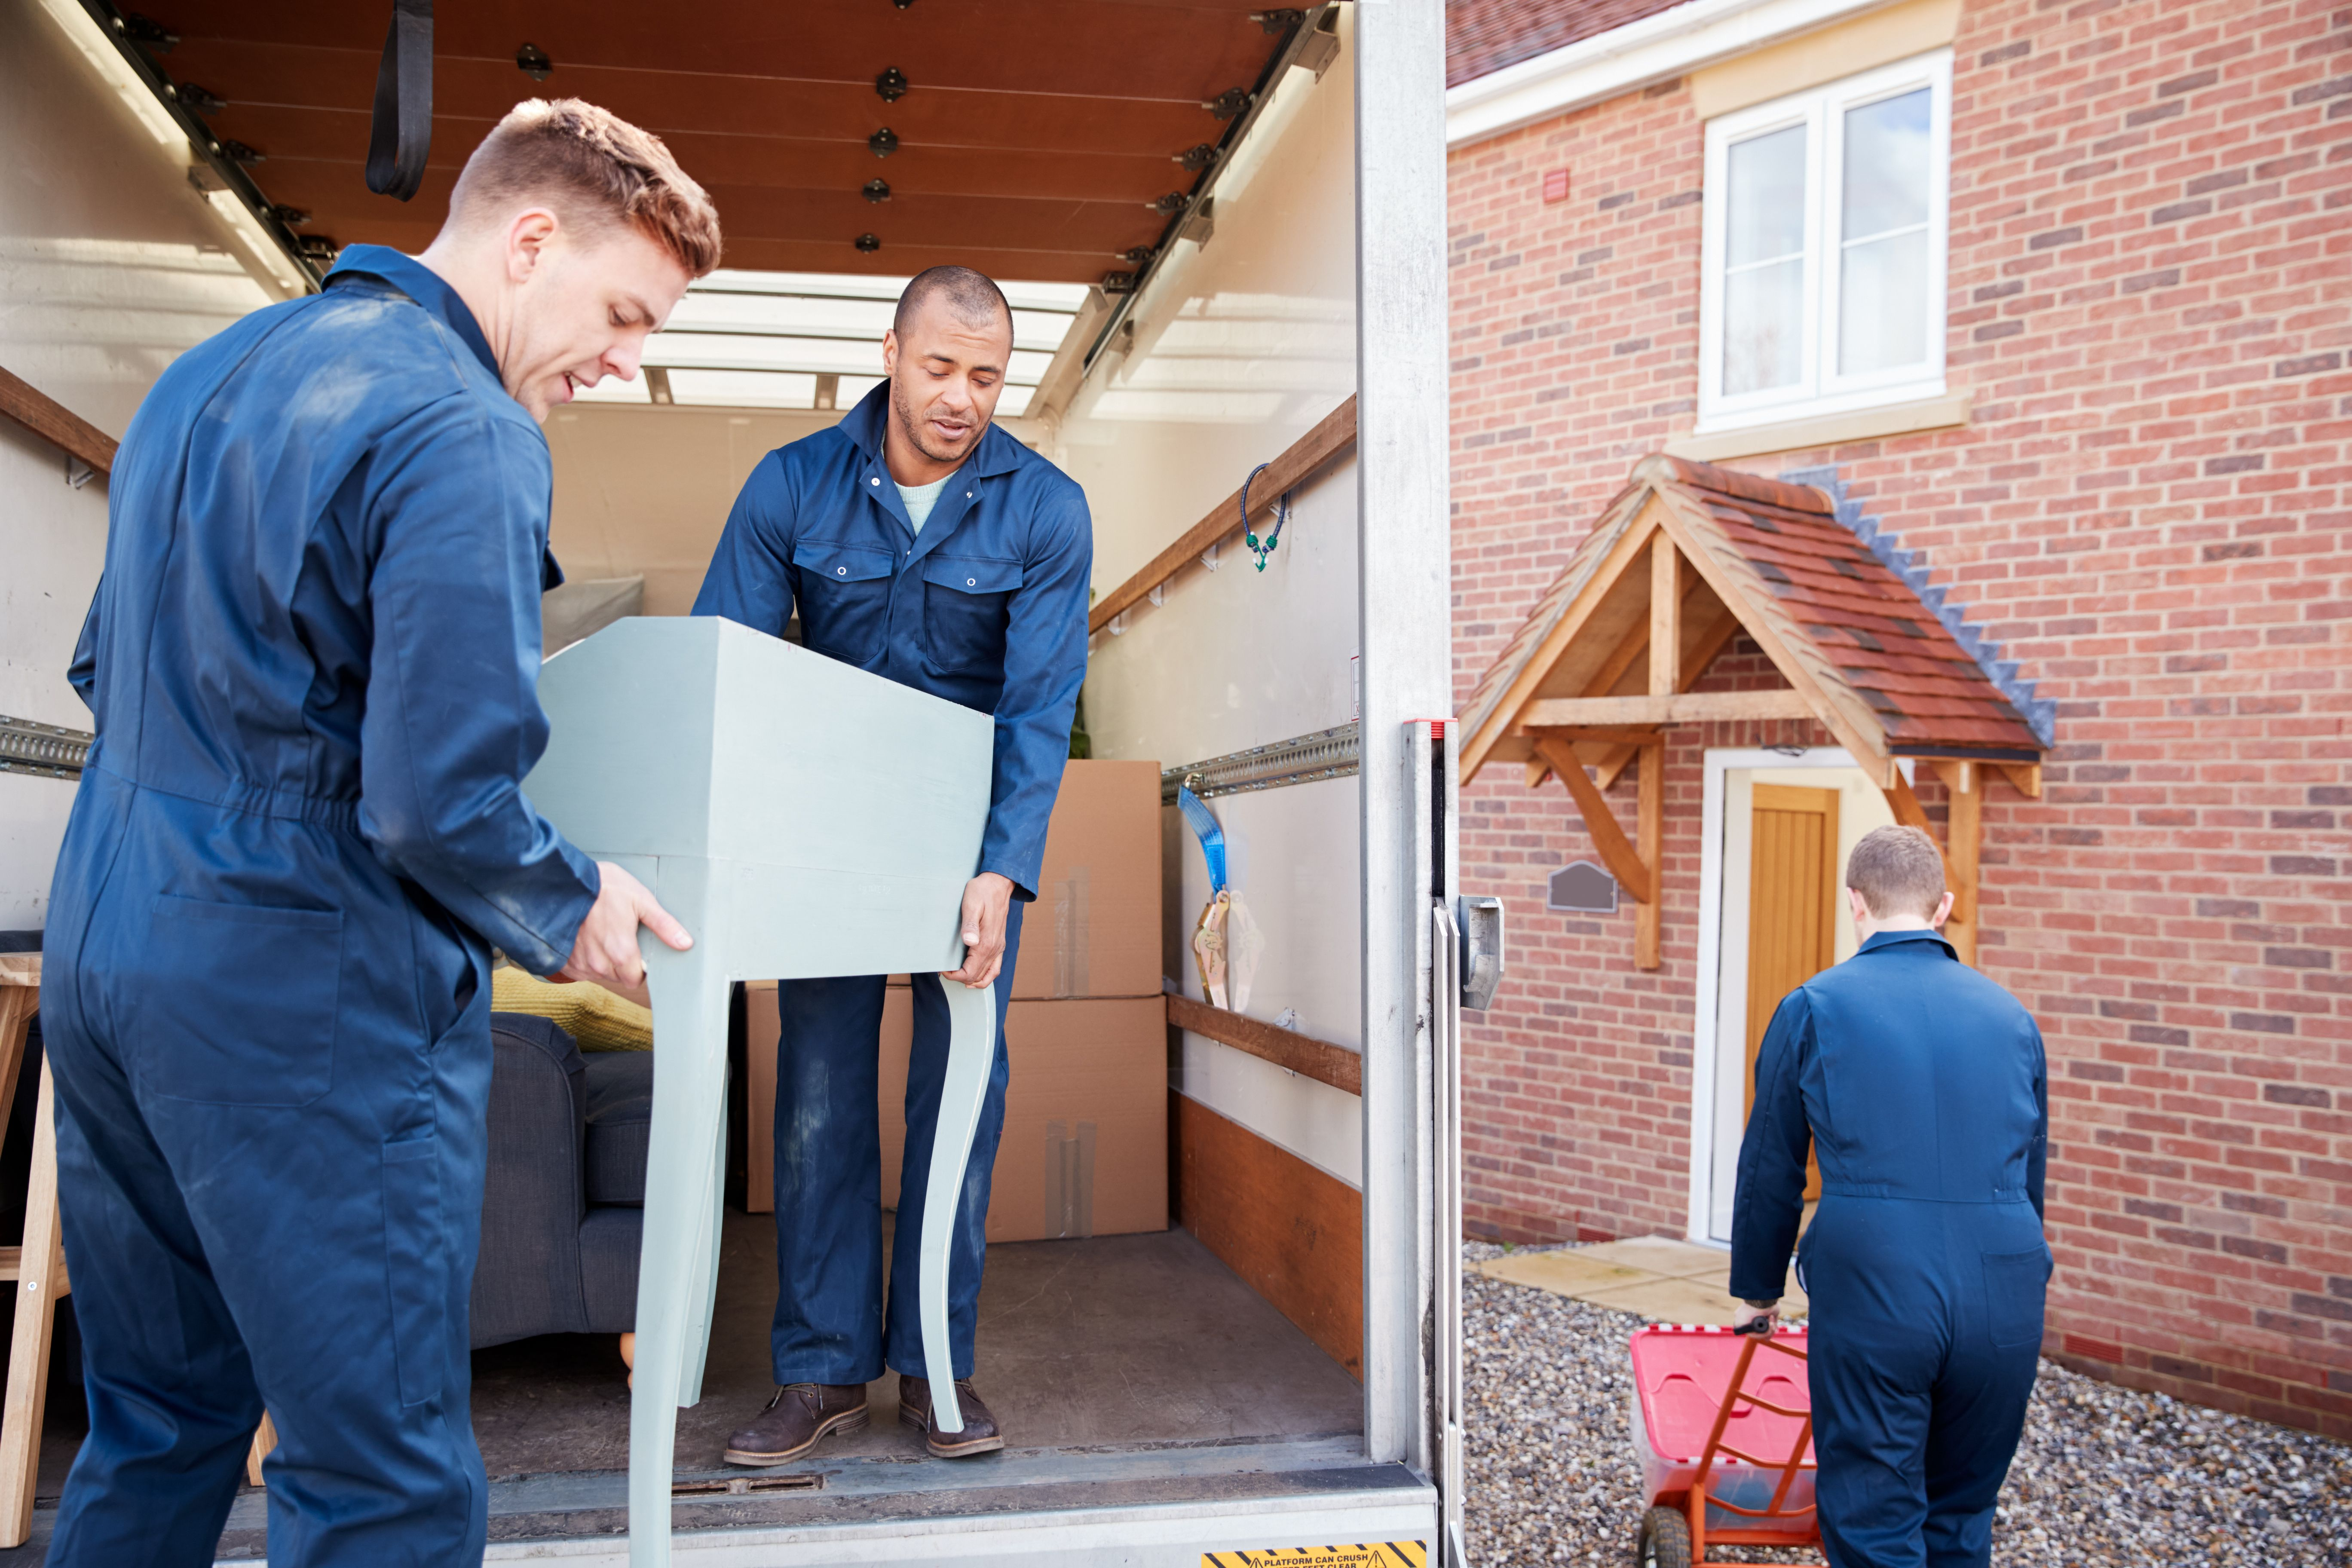 Removals workers unloading furniture and boxes from a truck